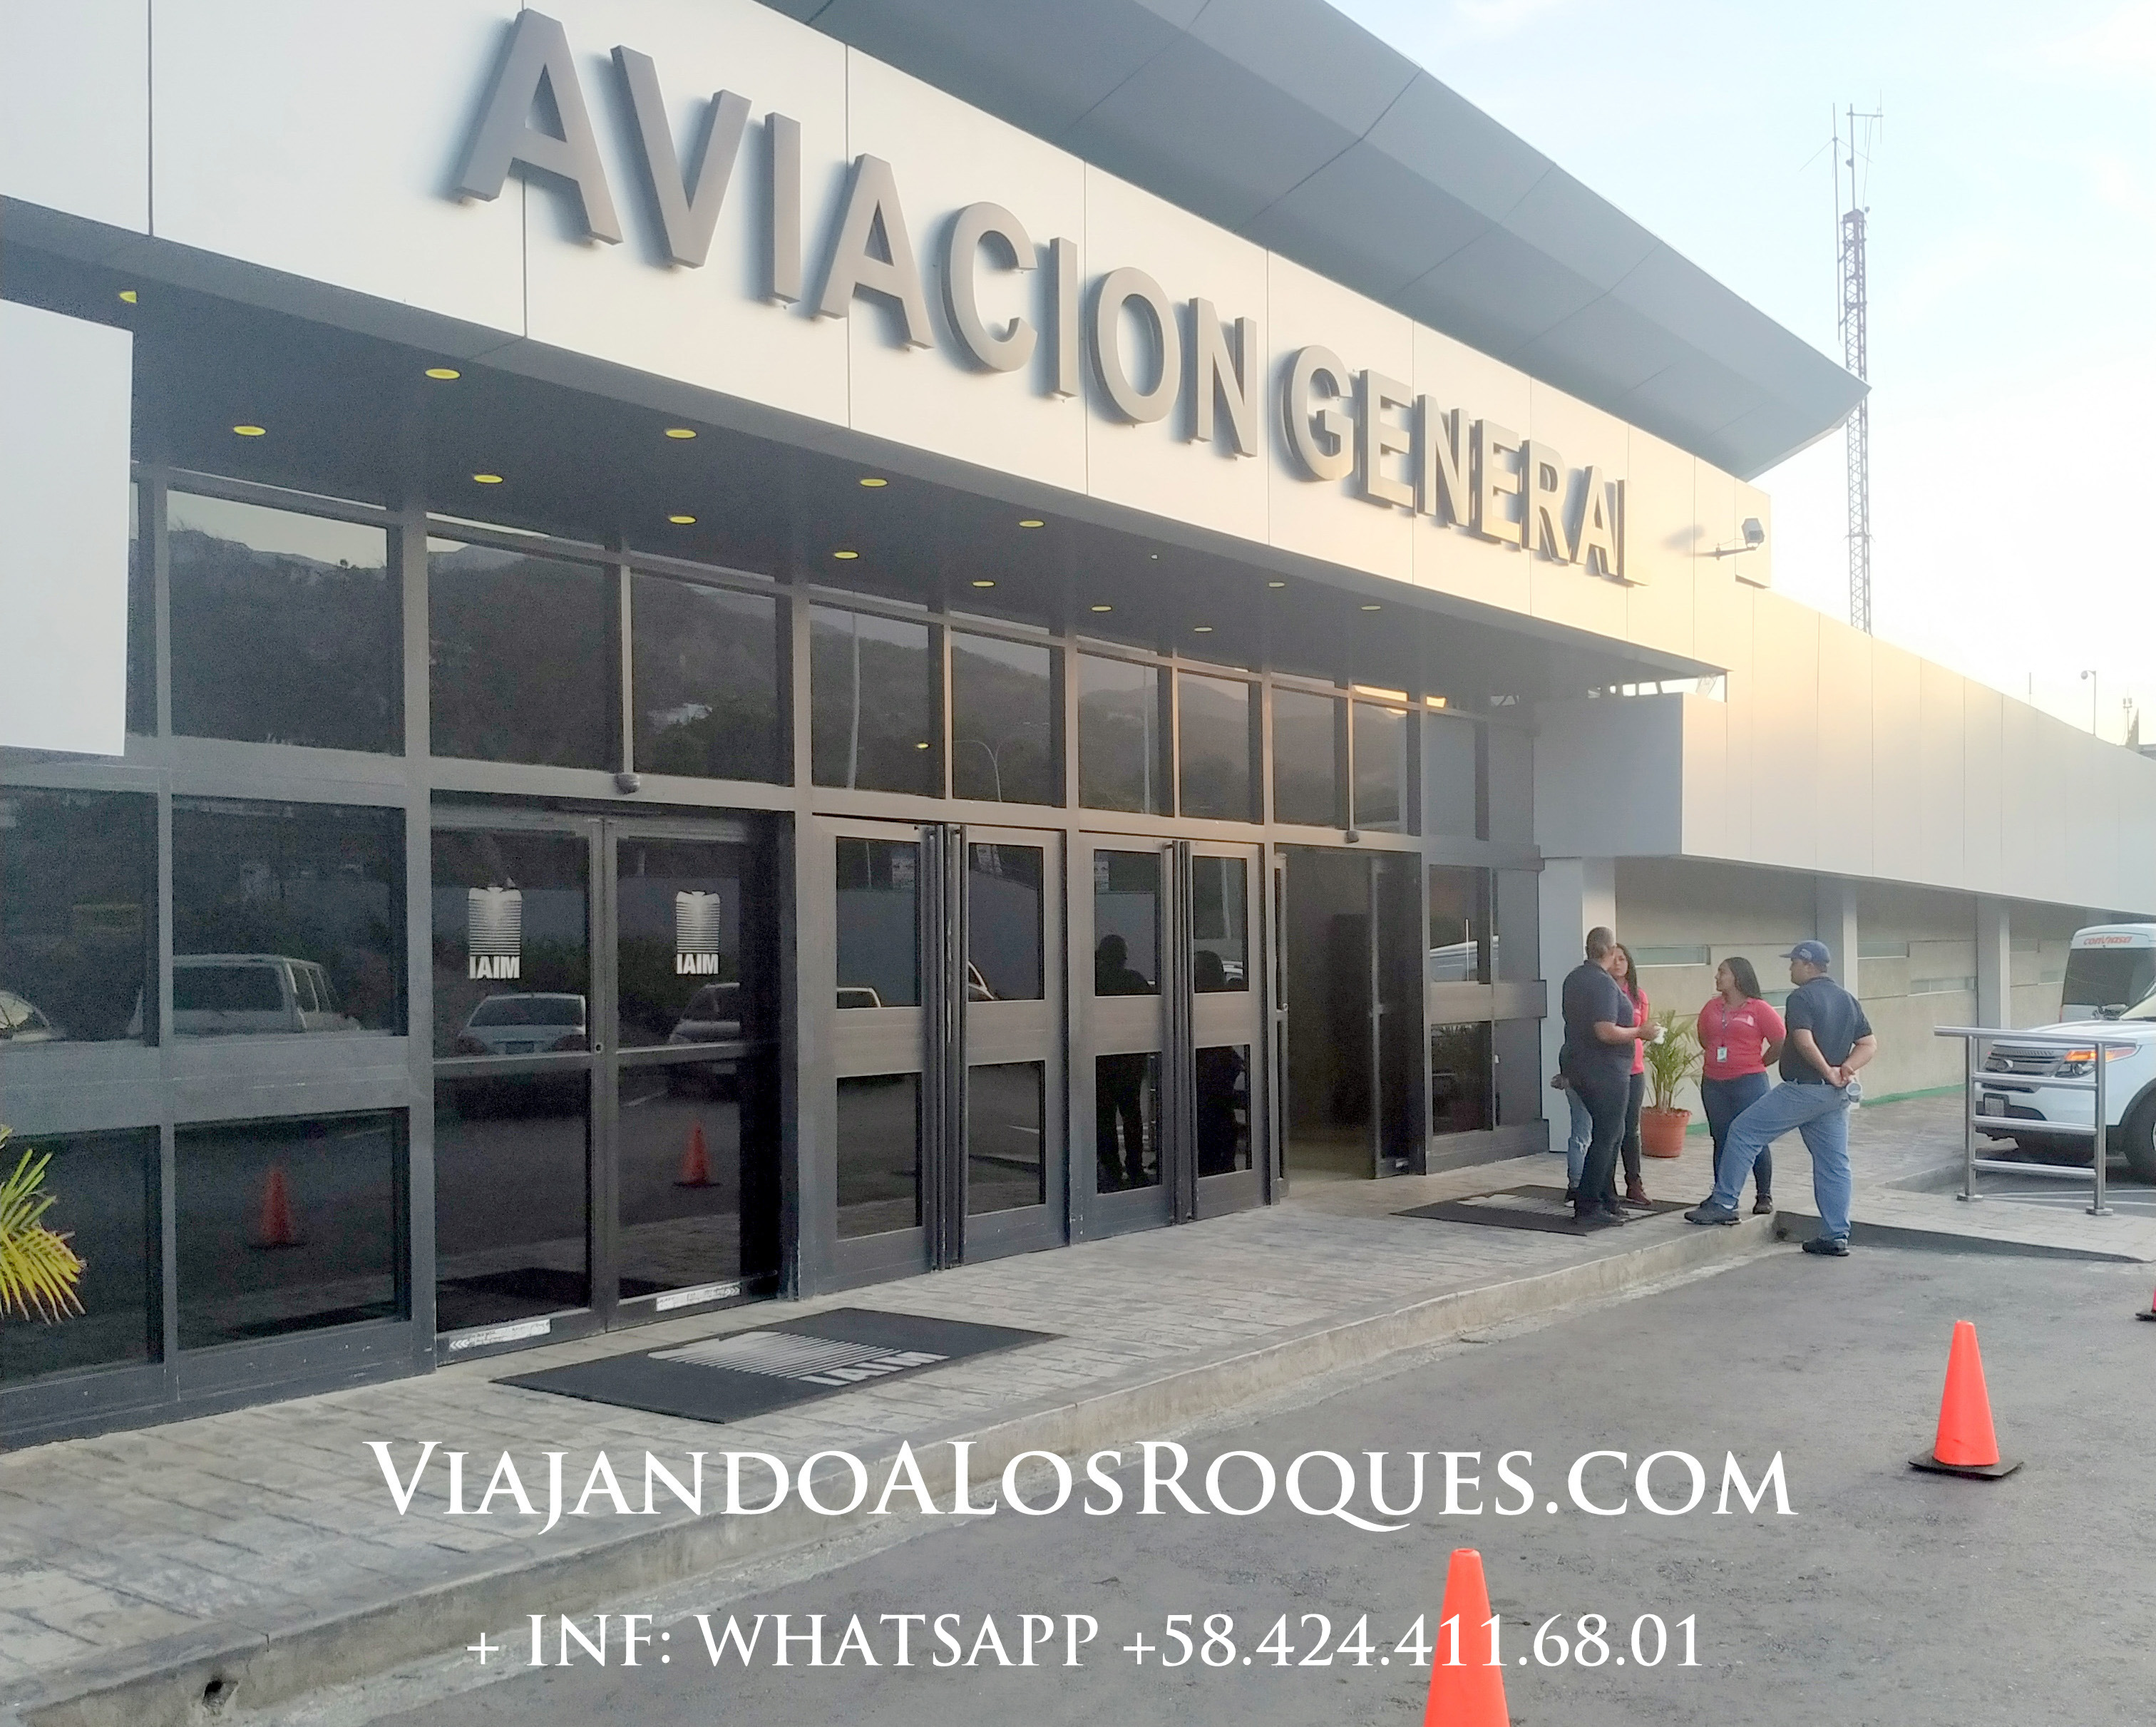 Aviacion-general-aeropuerto-auxiliar-maiquetia